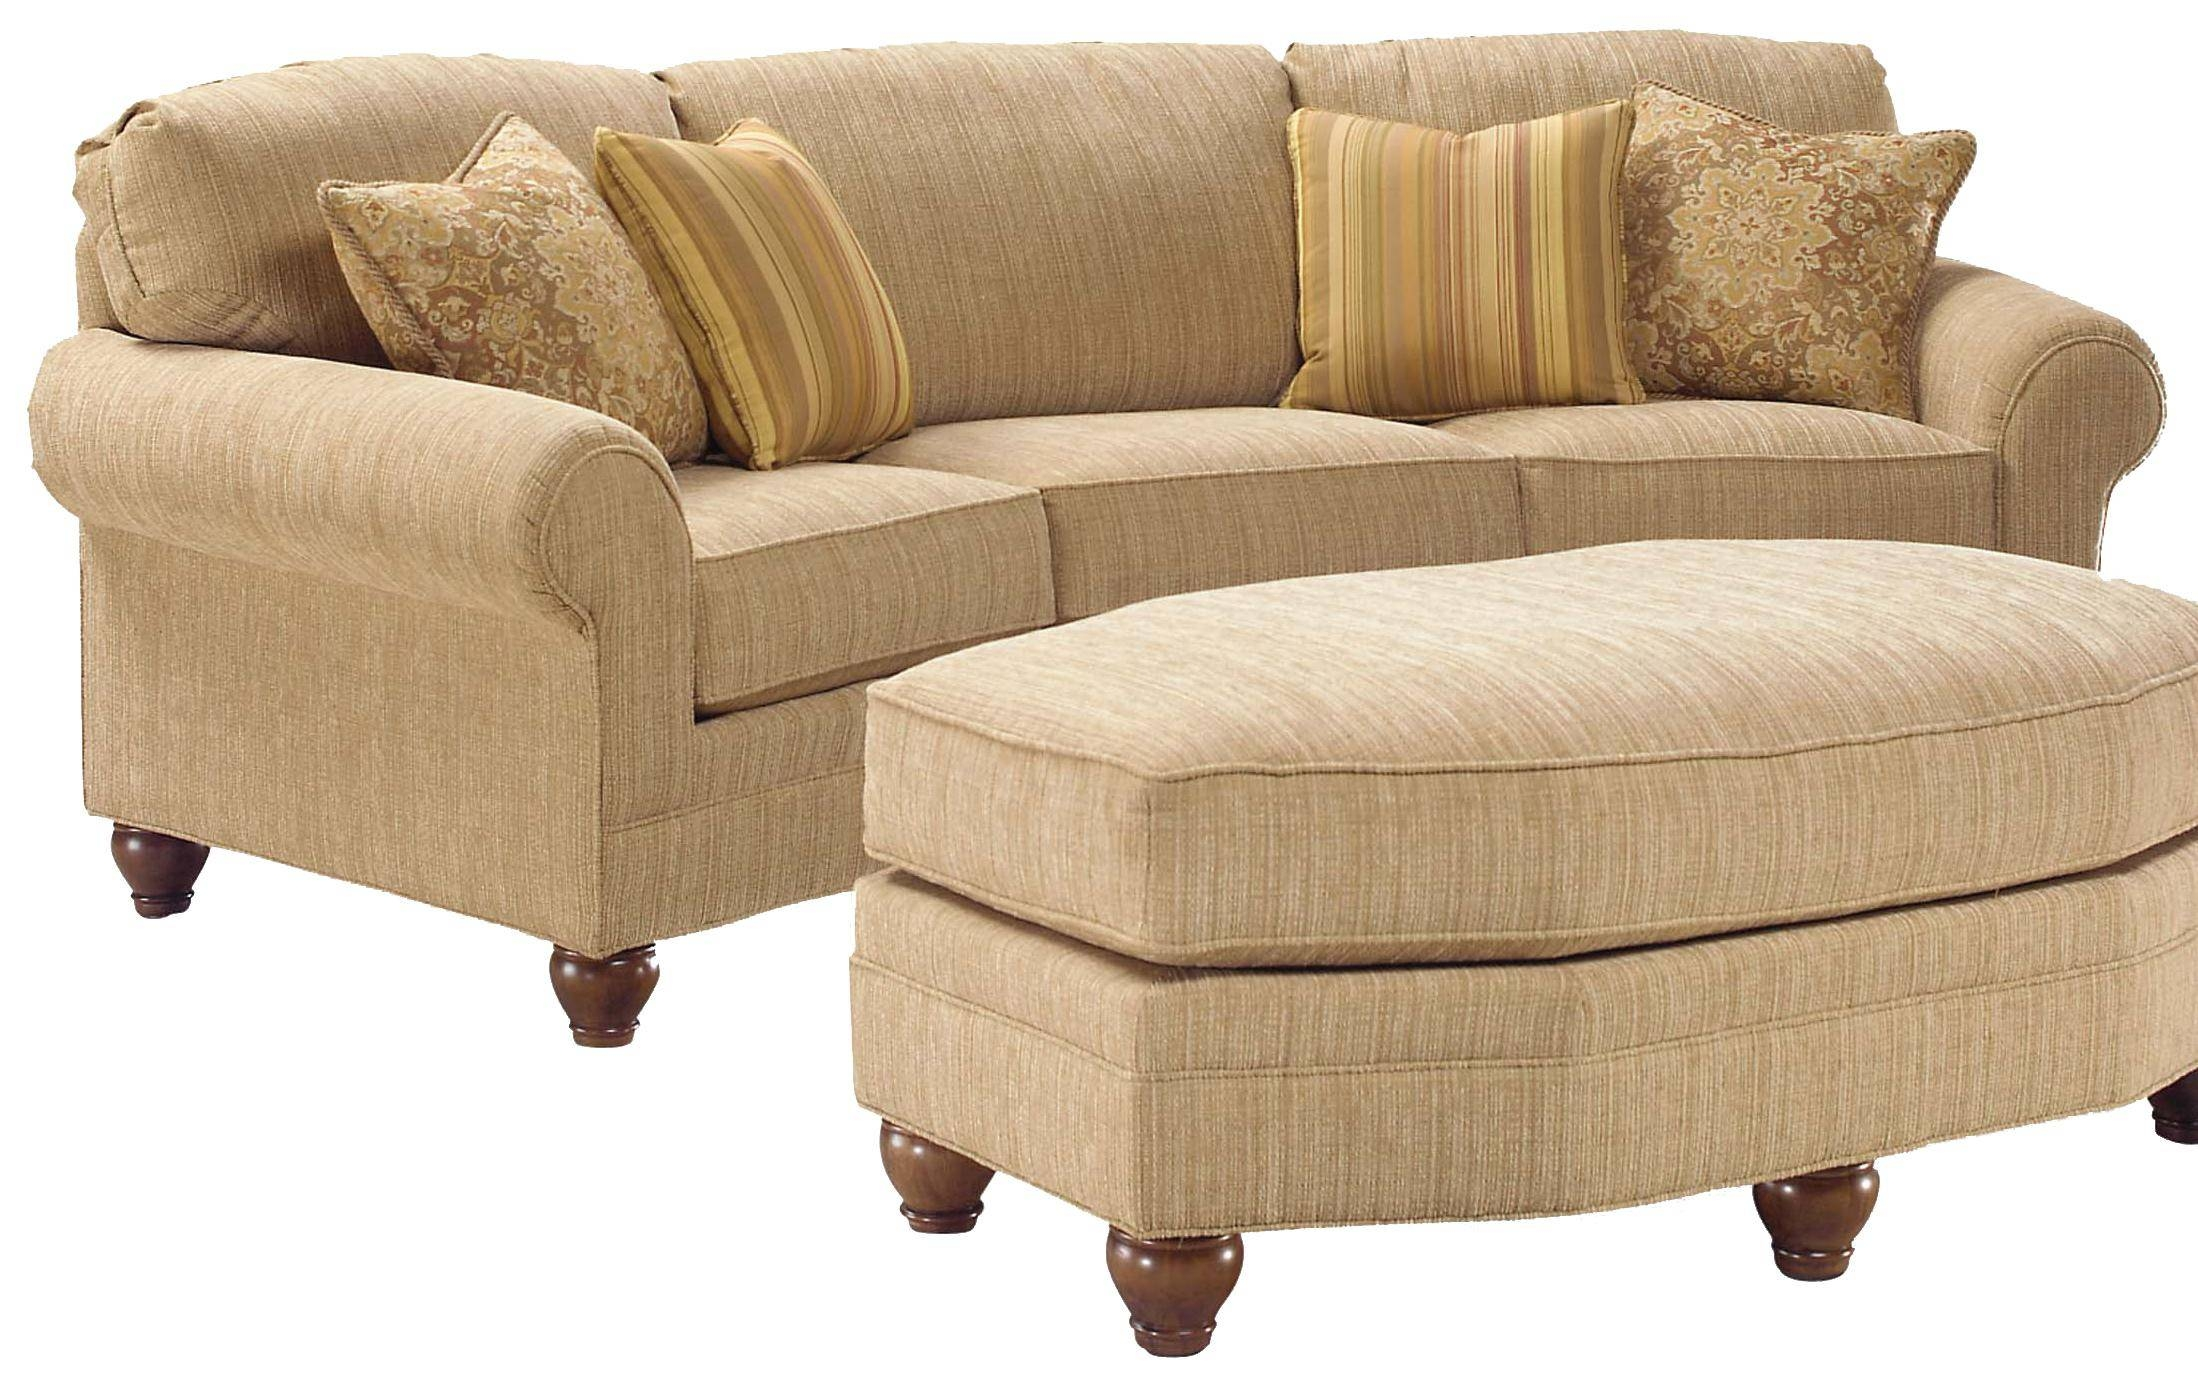 Furniture: Luxury Curved Sectional Sofa For Living Room Furniture inside Striped Sofas And Chairs (Image 18 of 30)